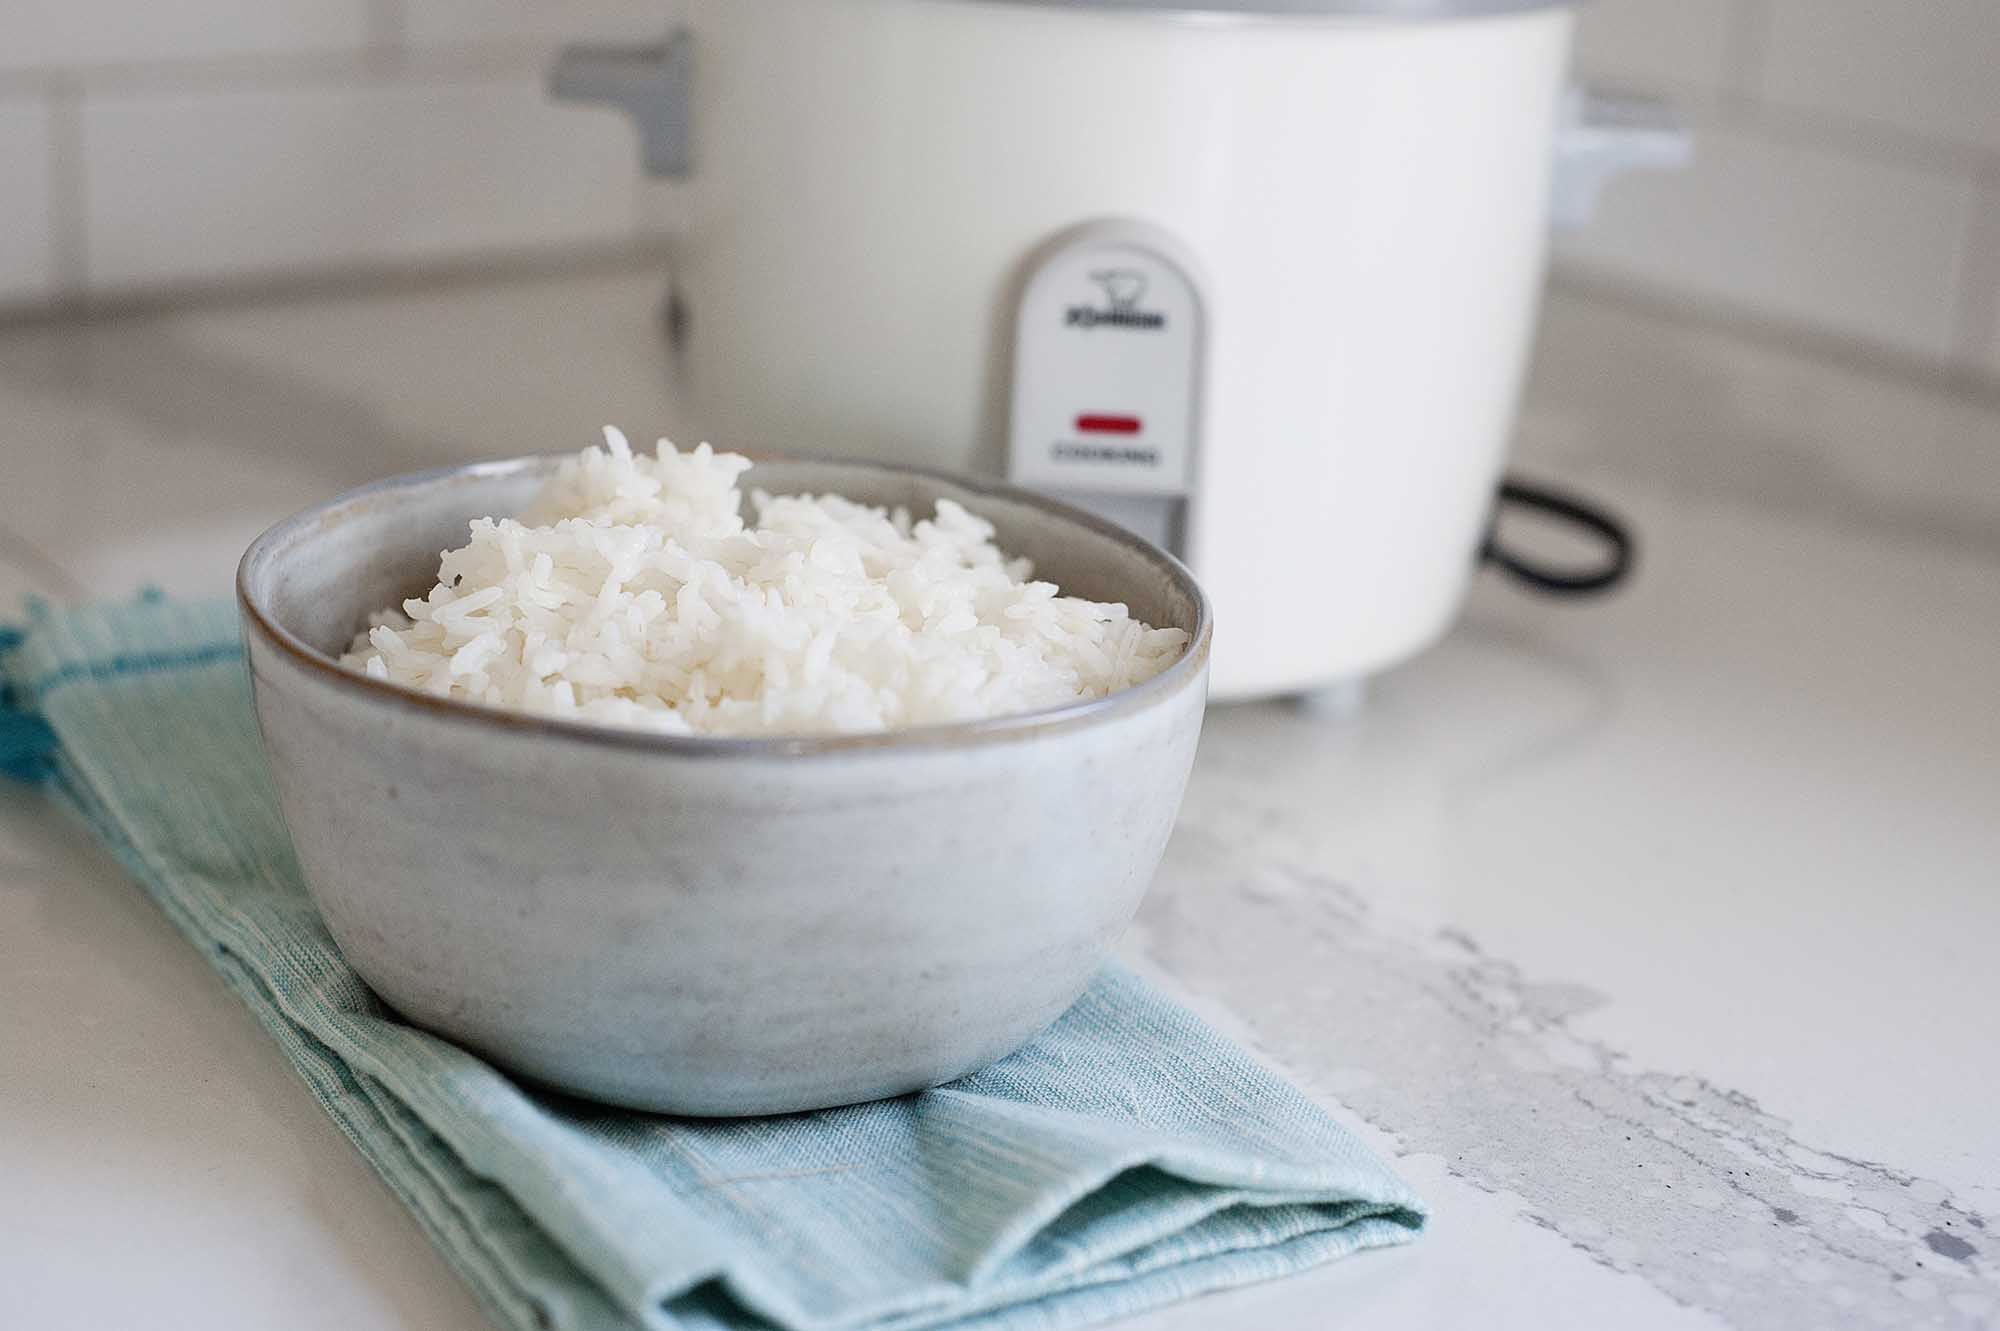 Horizontal image of a ceramic bowl filled with white rice on a white counter. A teal dish towel is under the bowl of rice and a white rice cooker is in partial view behind the bowl.